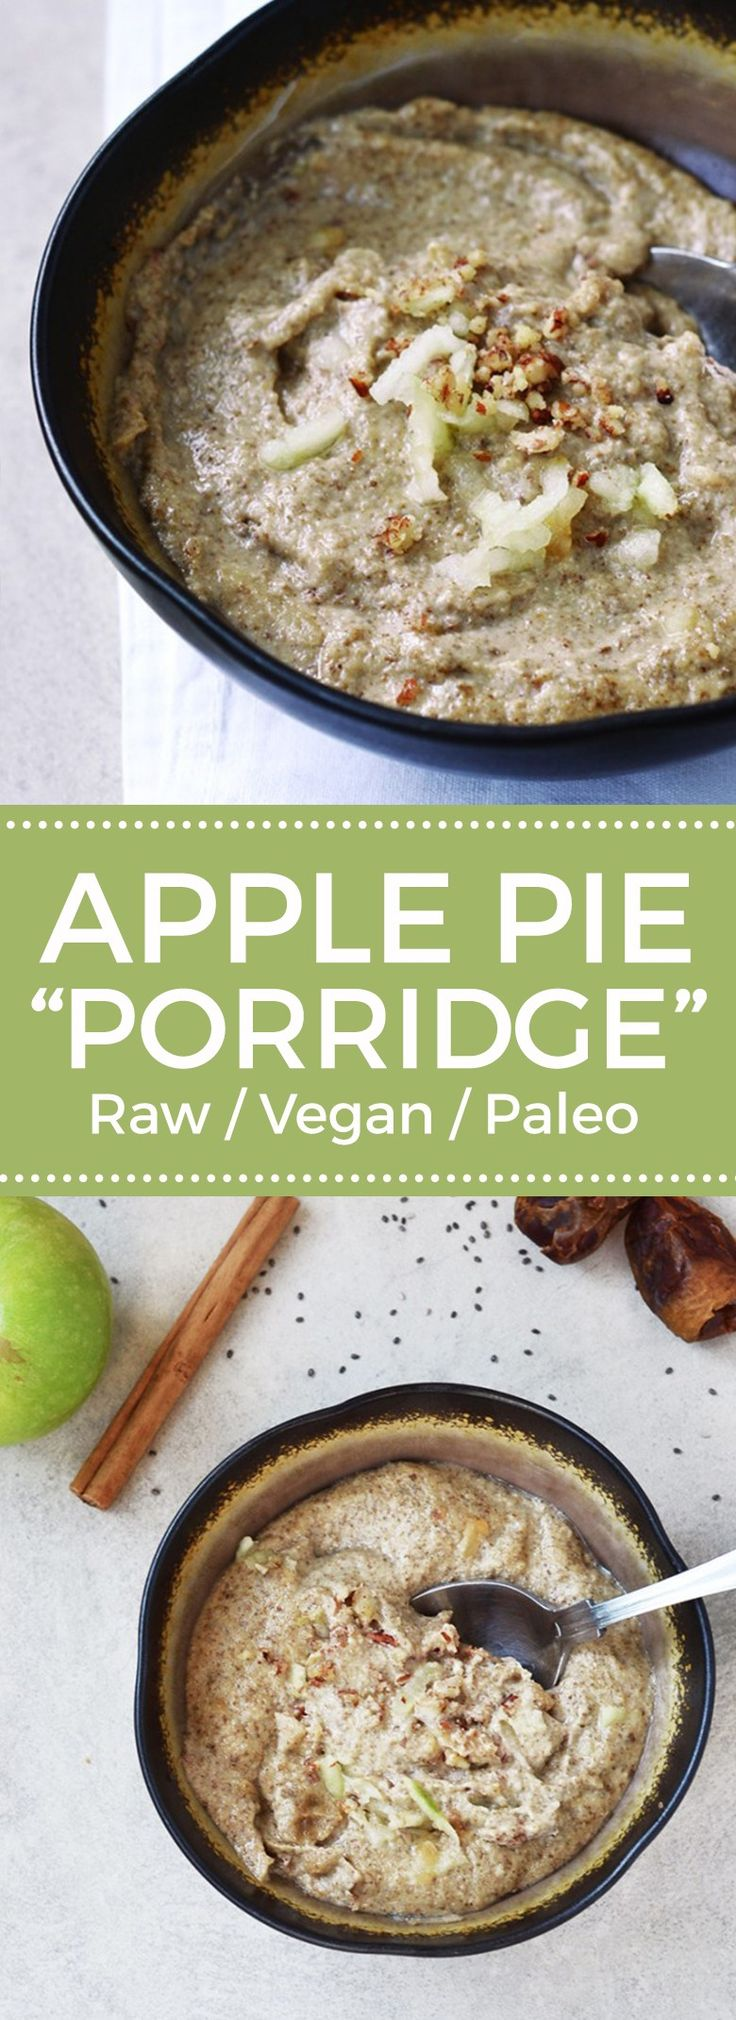 A warm, comforting chia seed porridge that's quick and easy to make. Apples and cinnamon are added to give a delicious apple pie flavour!